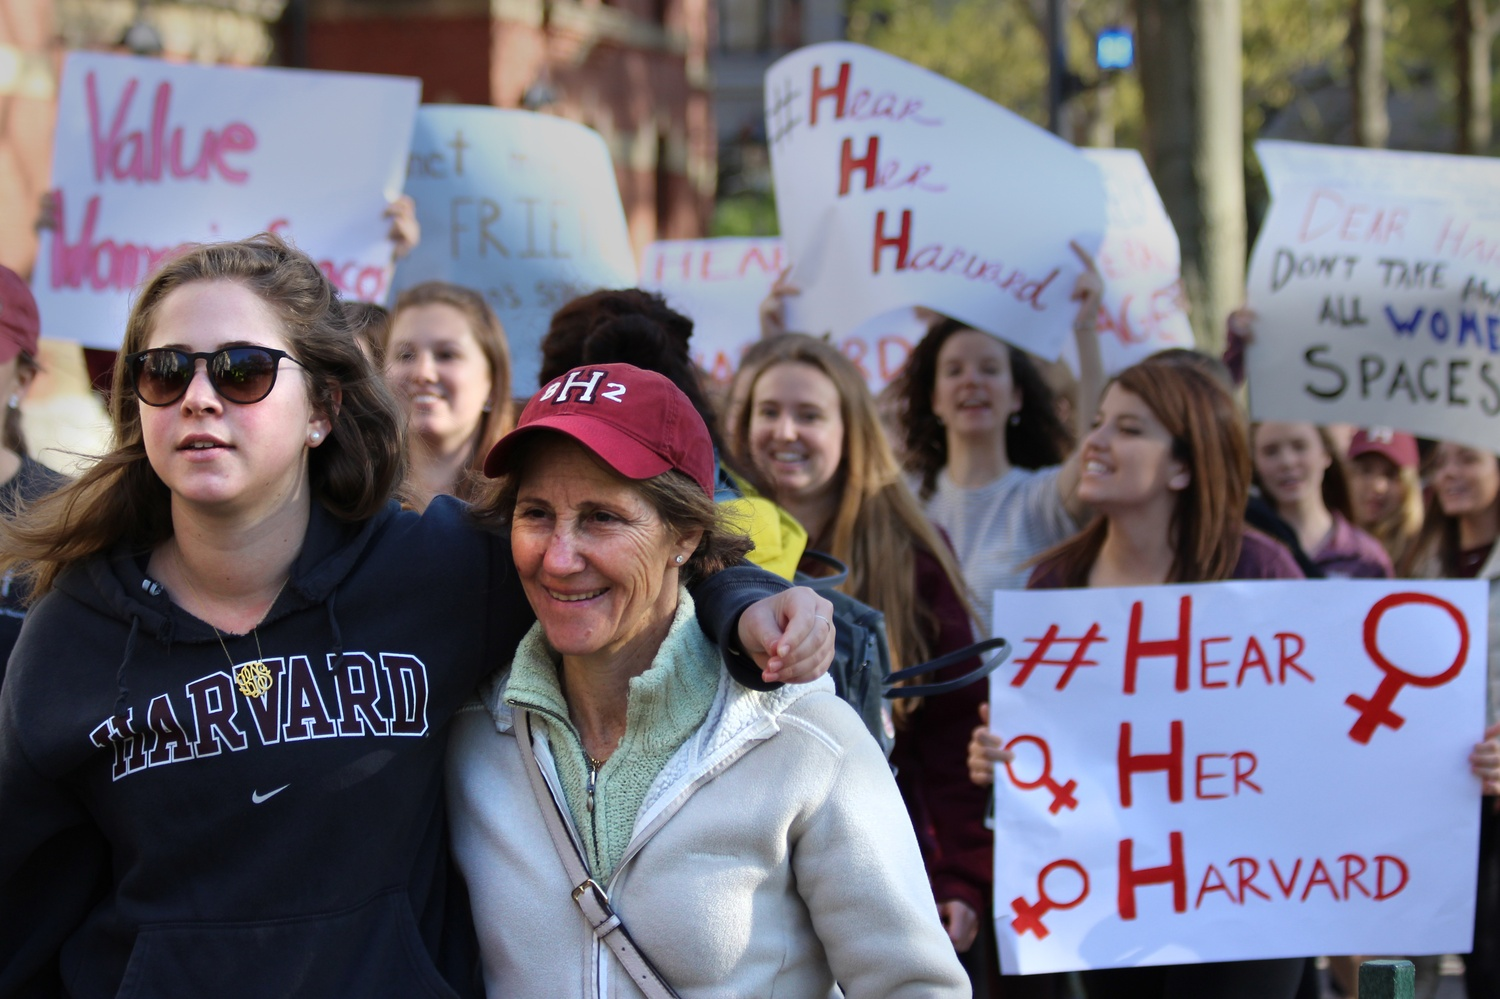 Kappa Kappa Gamma sorority member Elly Duker '19 marched with her mother, Julie Starr-Duker '82, at the #HearHerHarvard protest against sanctions against unrecognized single-gender social organizations last May.